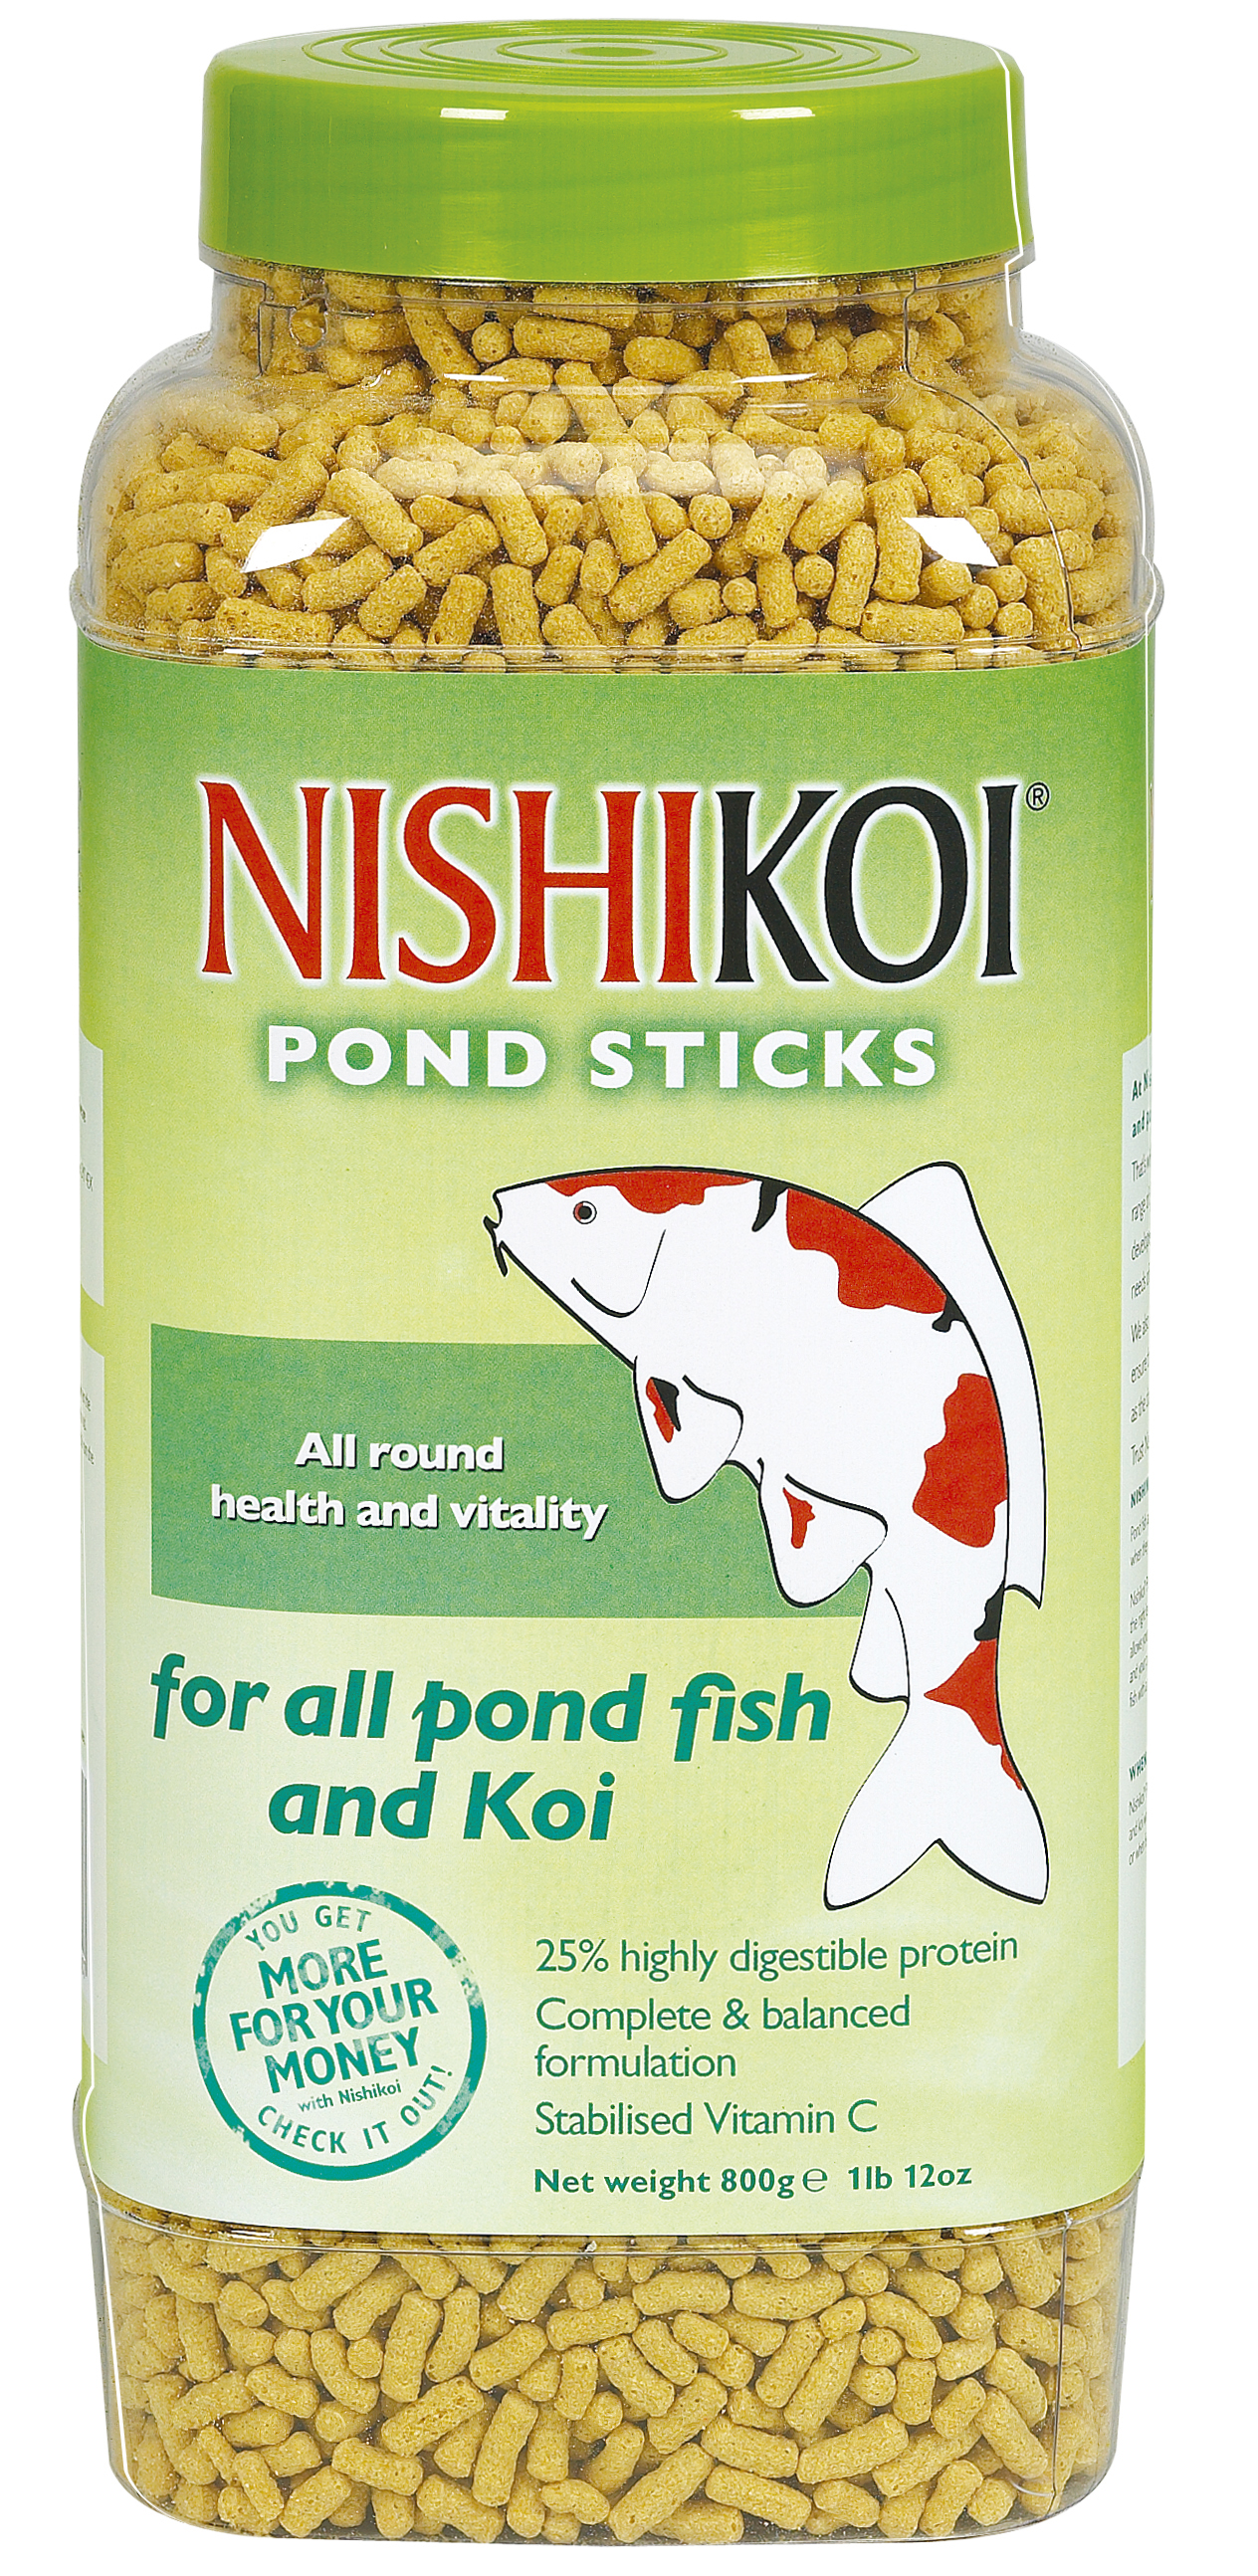 Nishikoi pond sticks floating fish food healthy goldfish for Koi fish pond for beginners